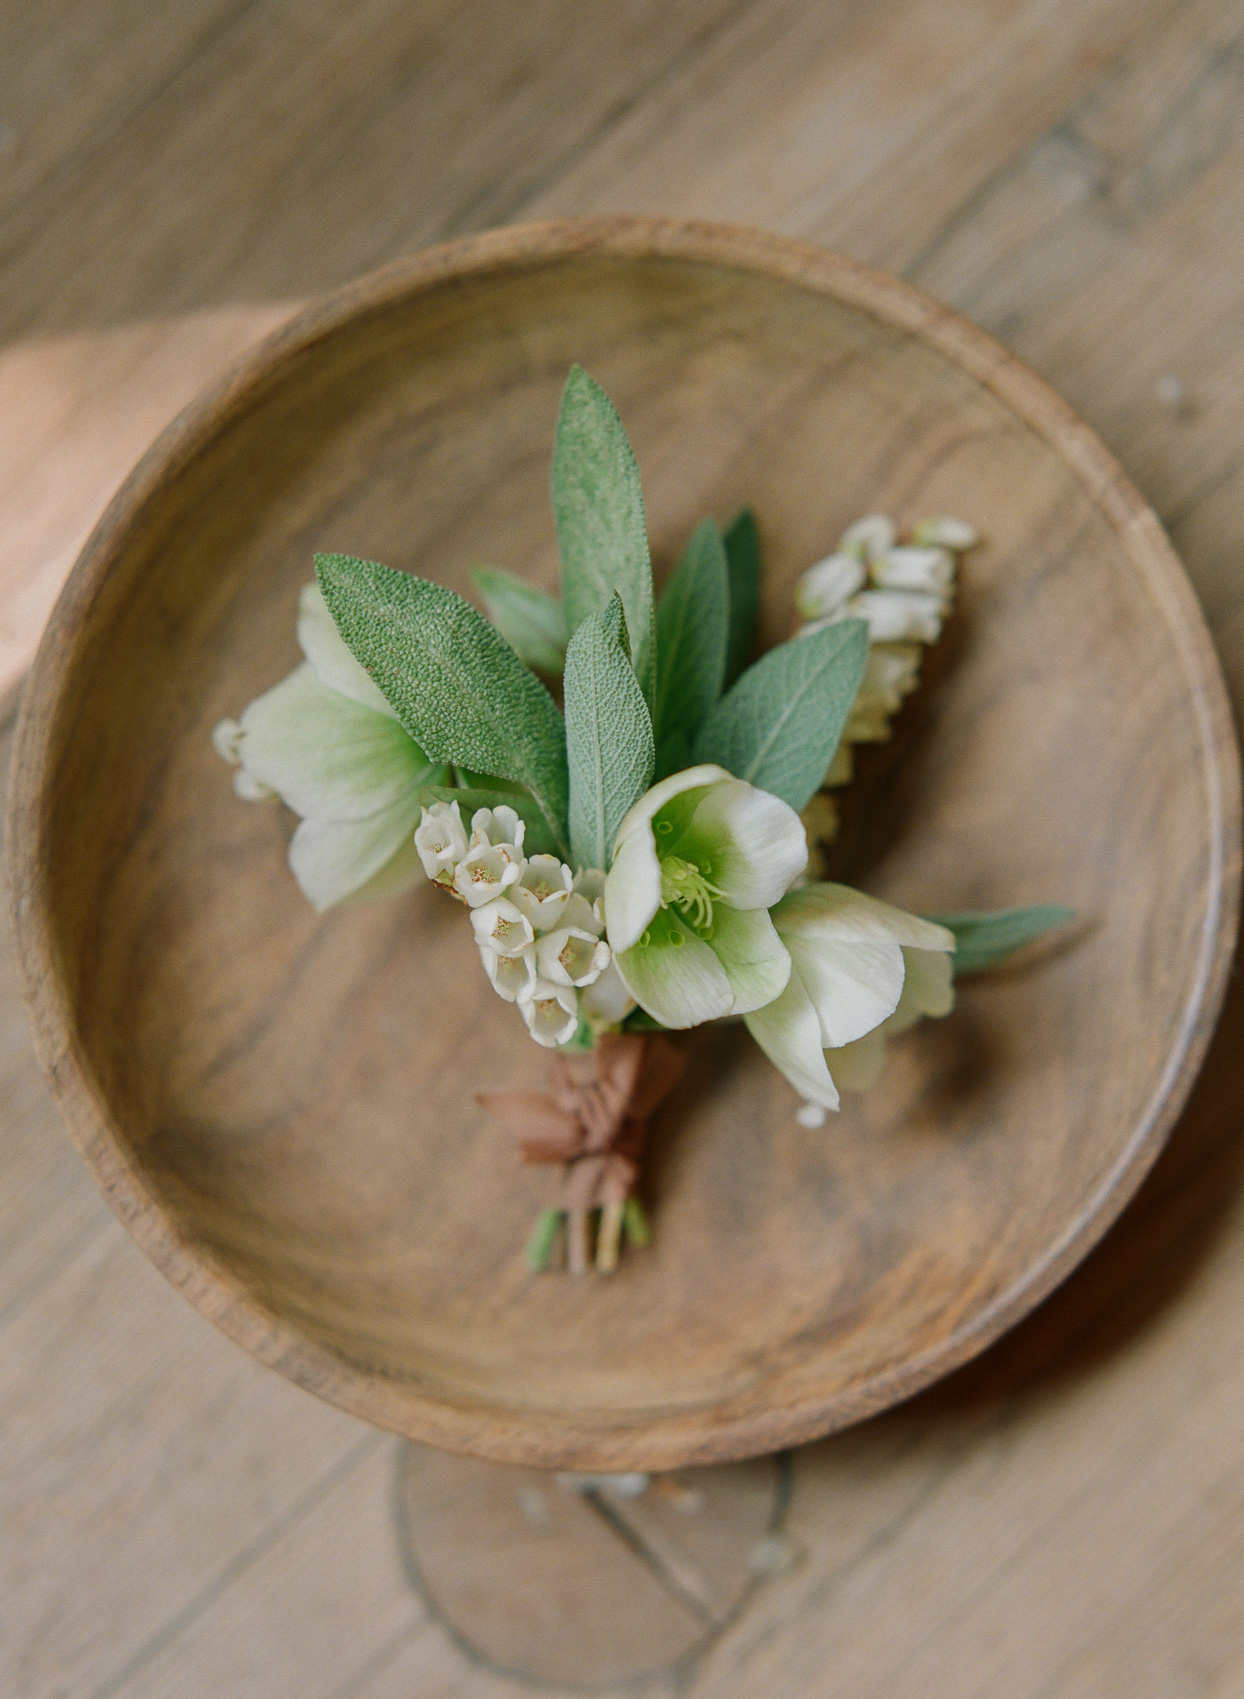 groom's boutonniere with white flowers and greenery